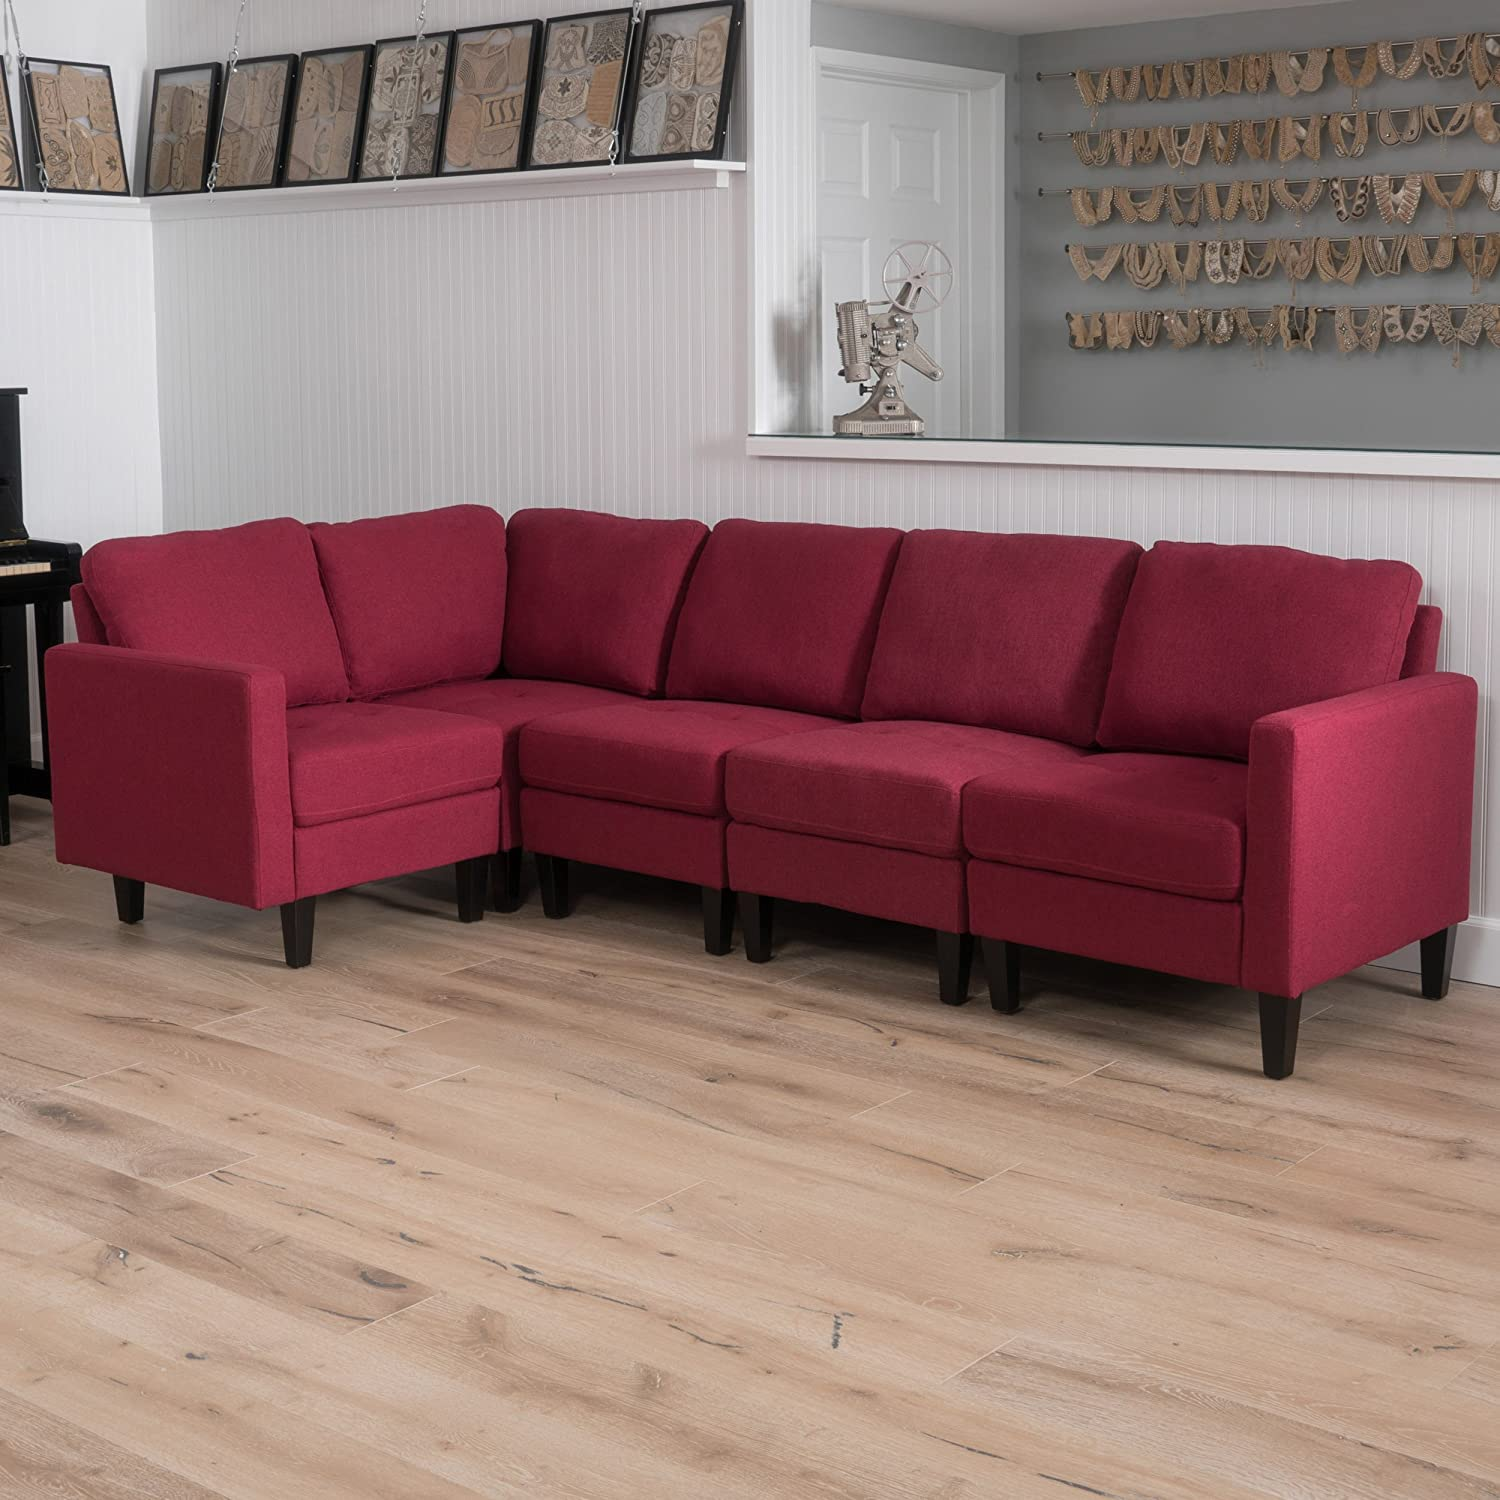 Surprising Christopher Knight Home Bridger Sectional Sofa Set 5 Piece Living Room Furniture Deep Red Gmtry Best Dining Table And Chair Ideas Images Gmtryco